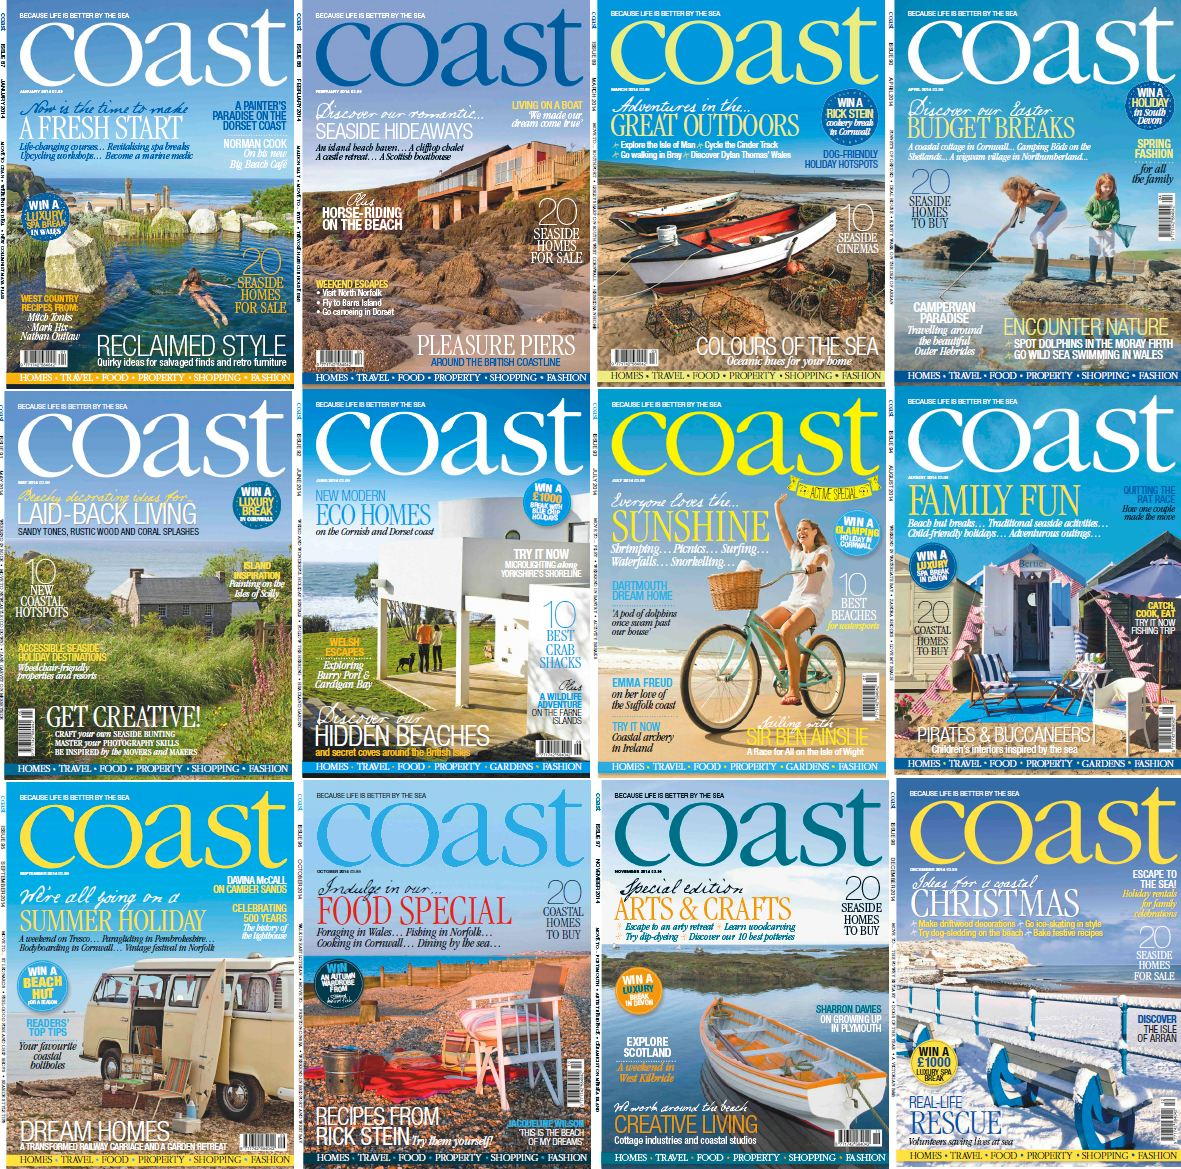 Coast Magazine - Full Year 2014 Issues Collection free download